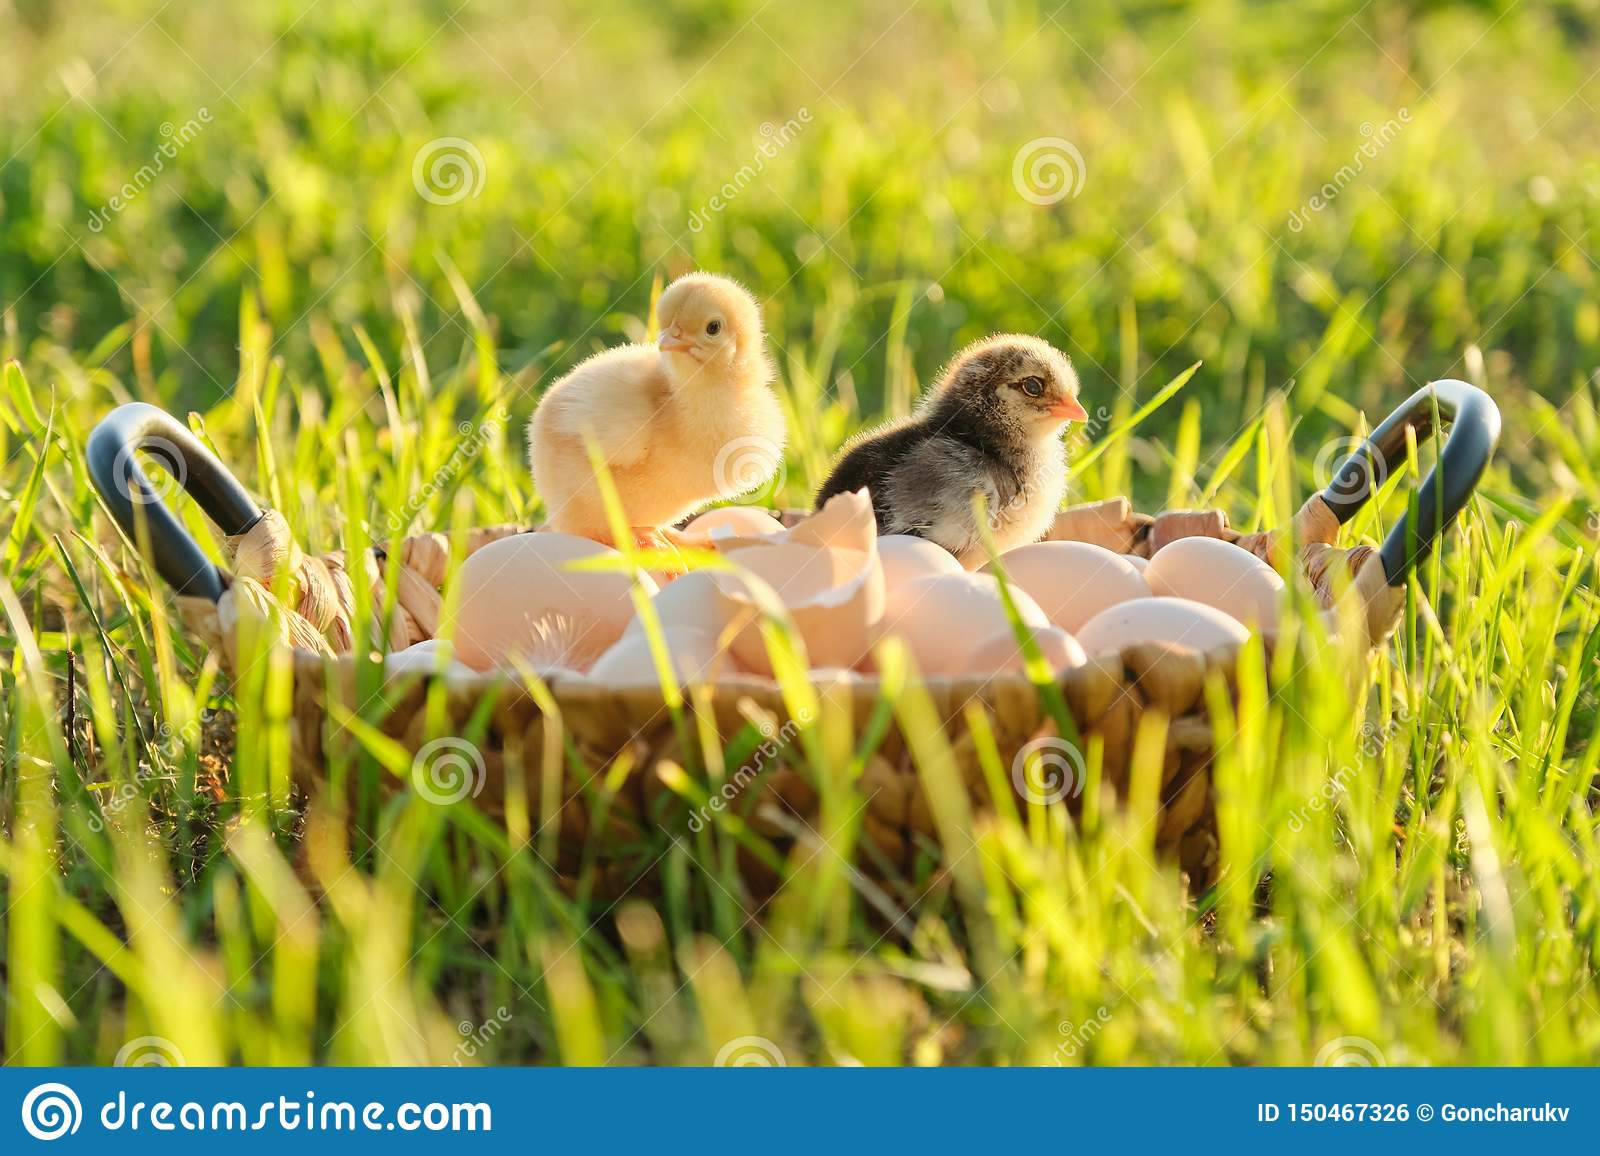 Basket with natural fresh organic eggs with two little newborn baby chickens, grass nature background